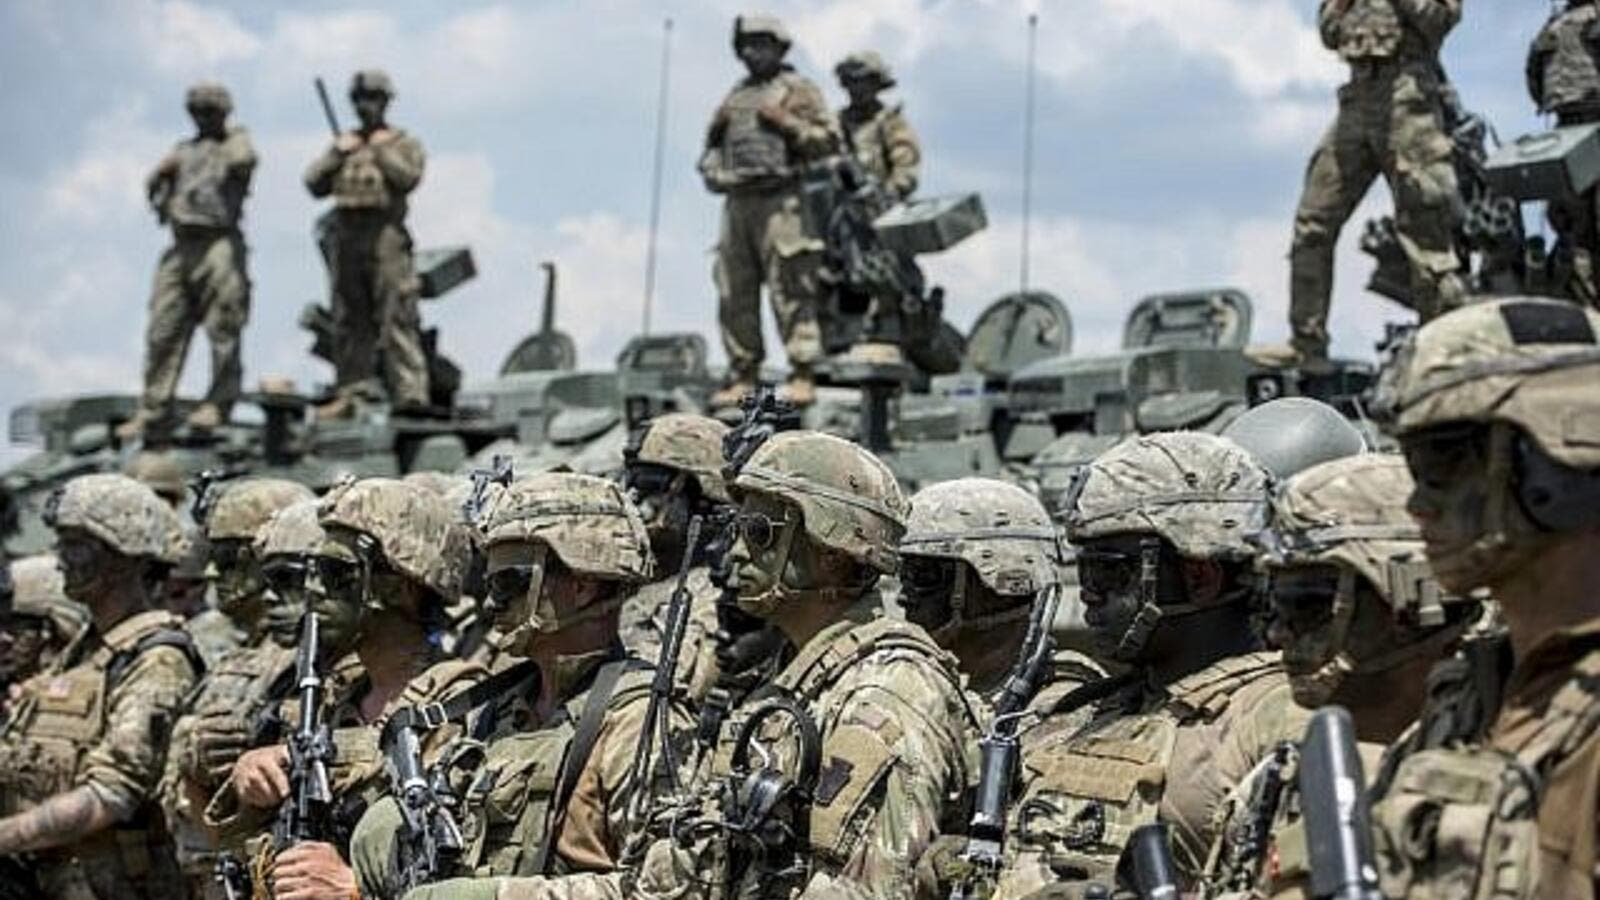 Worrying trend: Sexual assaults rise at US military academies: Pentagon